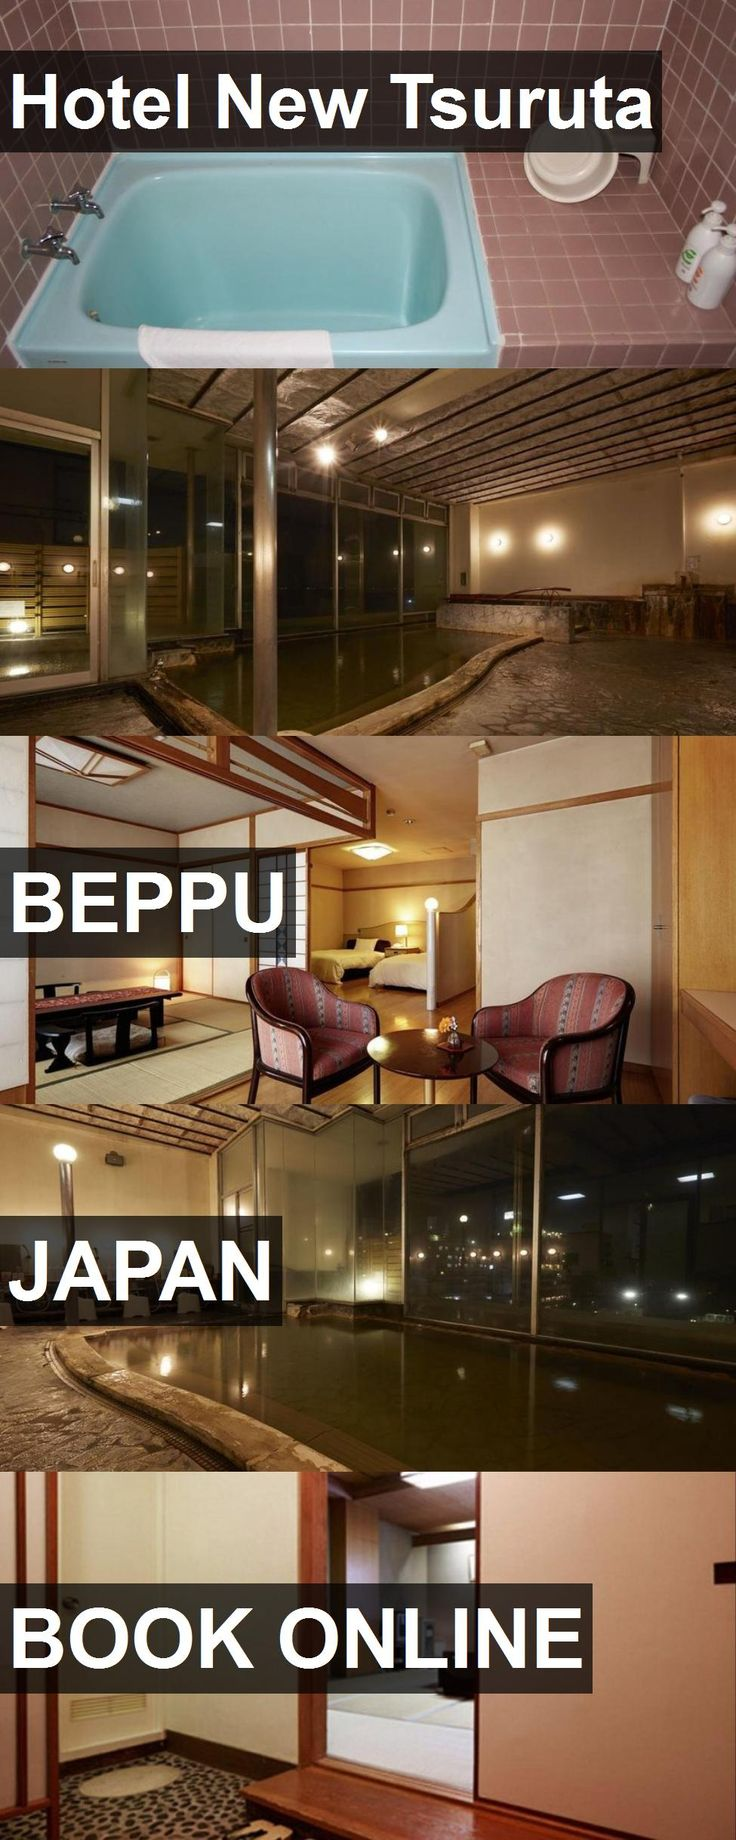 Hotel New Tsuruta in Beppu, Japan. For more information, photos, reviews and best prices please follow the link. #Japan #Beppu #travel #vacation #hotel